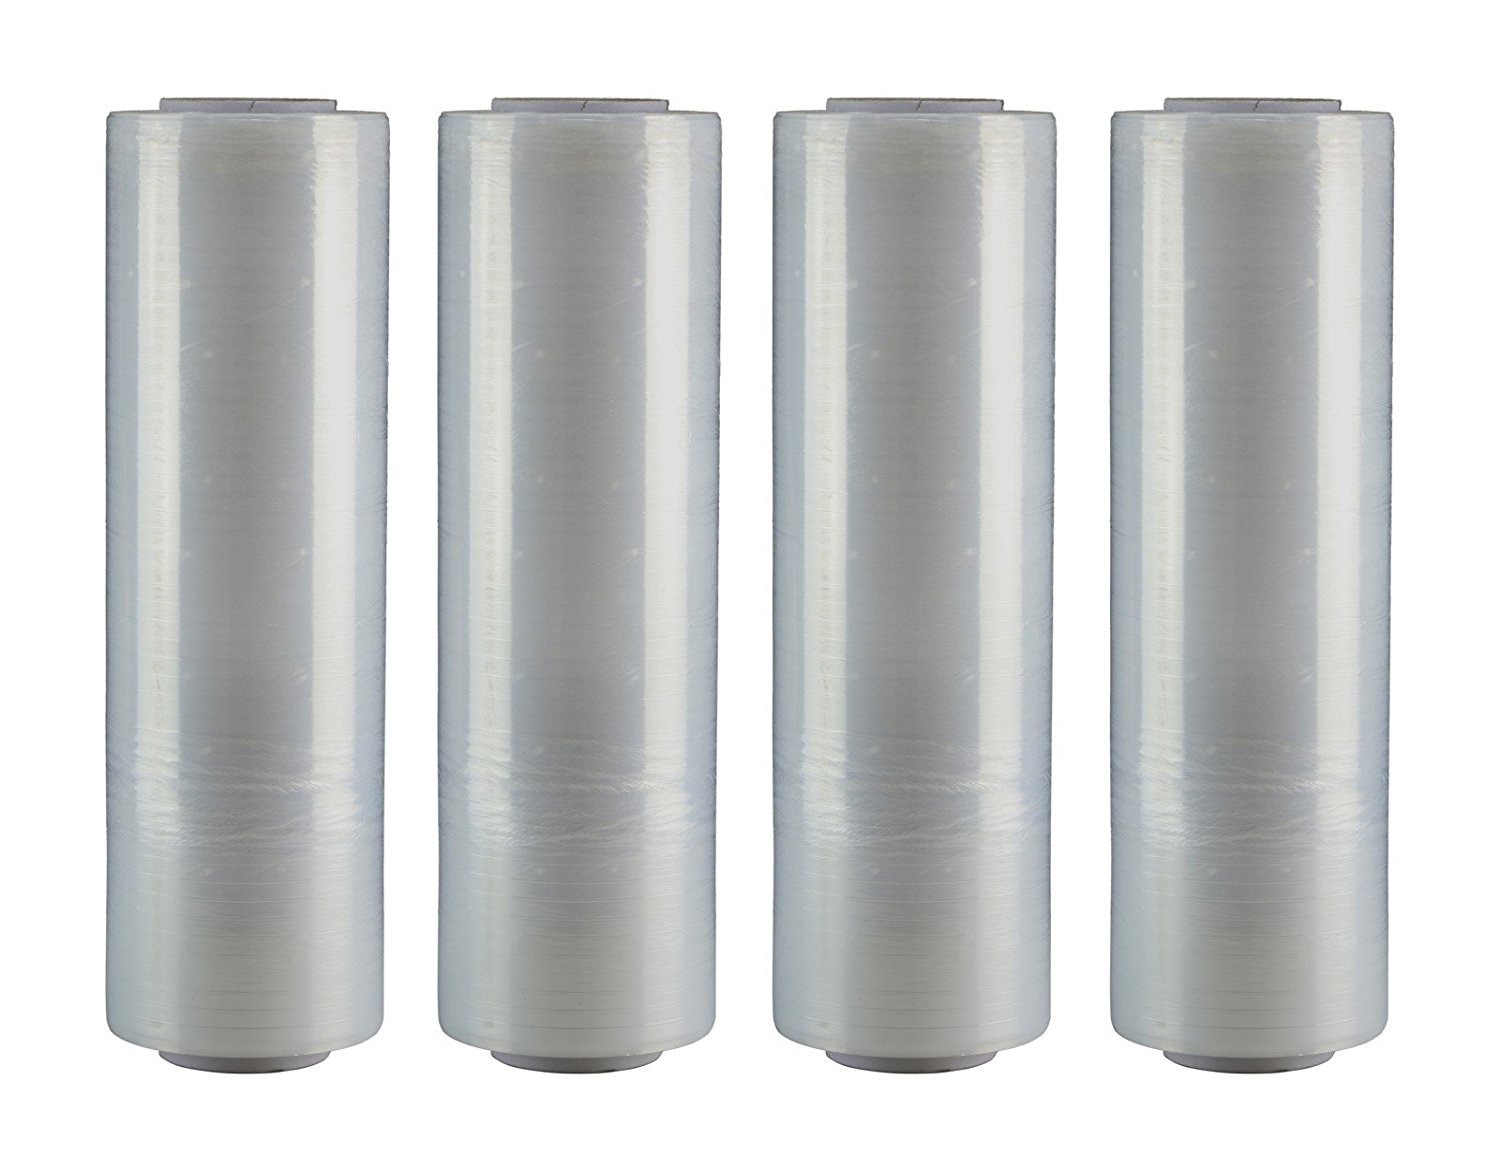 """AMERIQUE Shrink Wrap 4 Pack (6000FTX18"""", 39.8LBS Total): Stretch Film Plastic Wrap - Industrial Strength Hand Stretch Wrap, 18""""x 1,500 FT Per Roll, 80 Gauge Shrink Film / Pallet Wrap – Clear"""